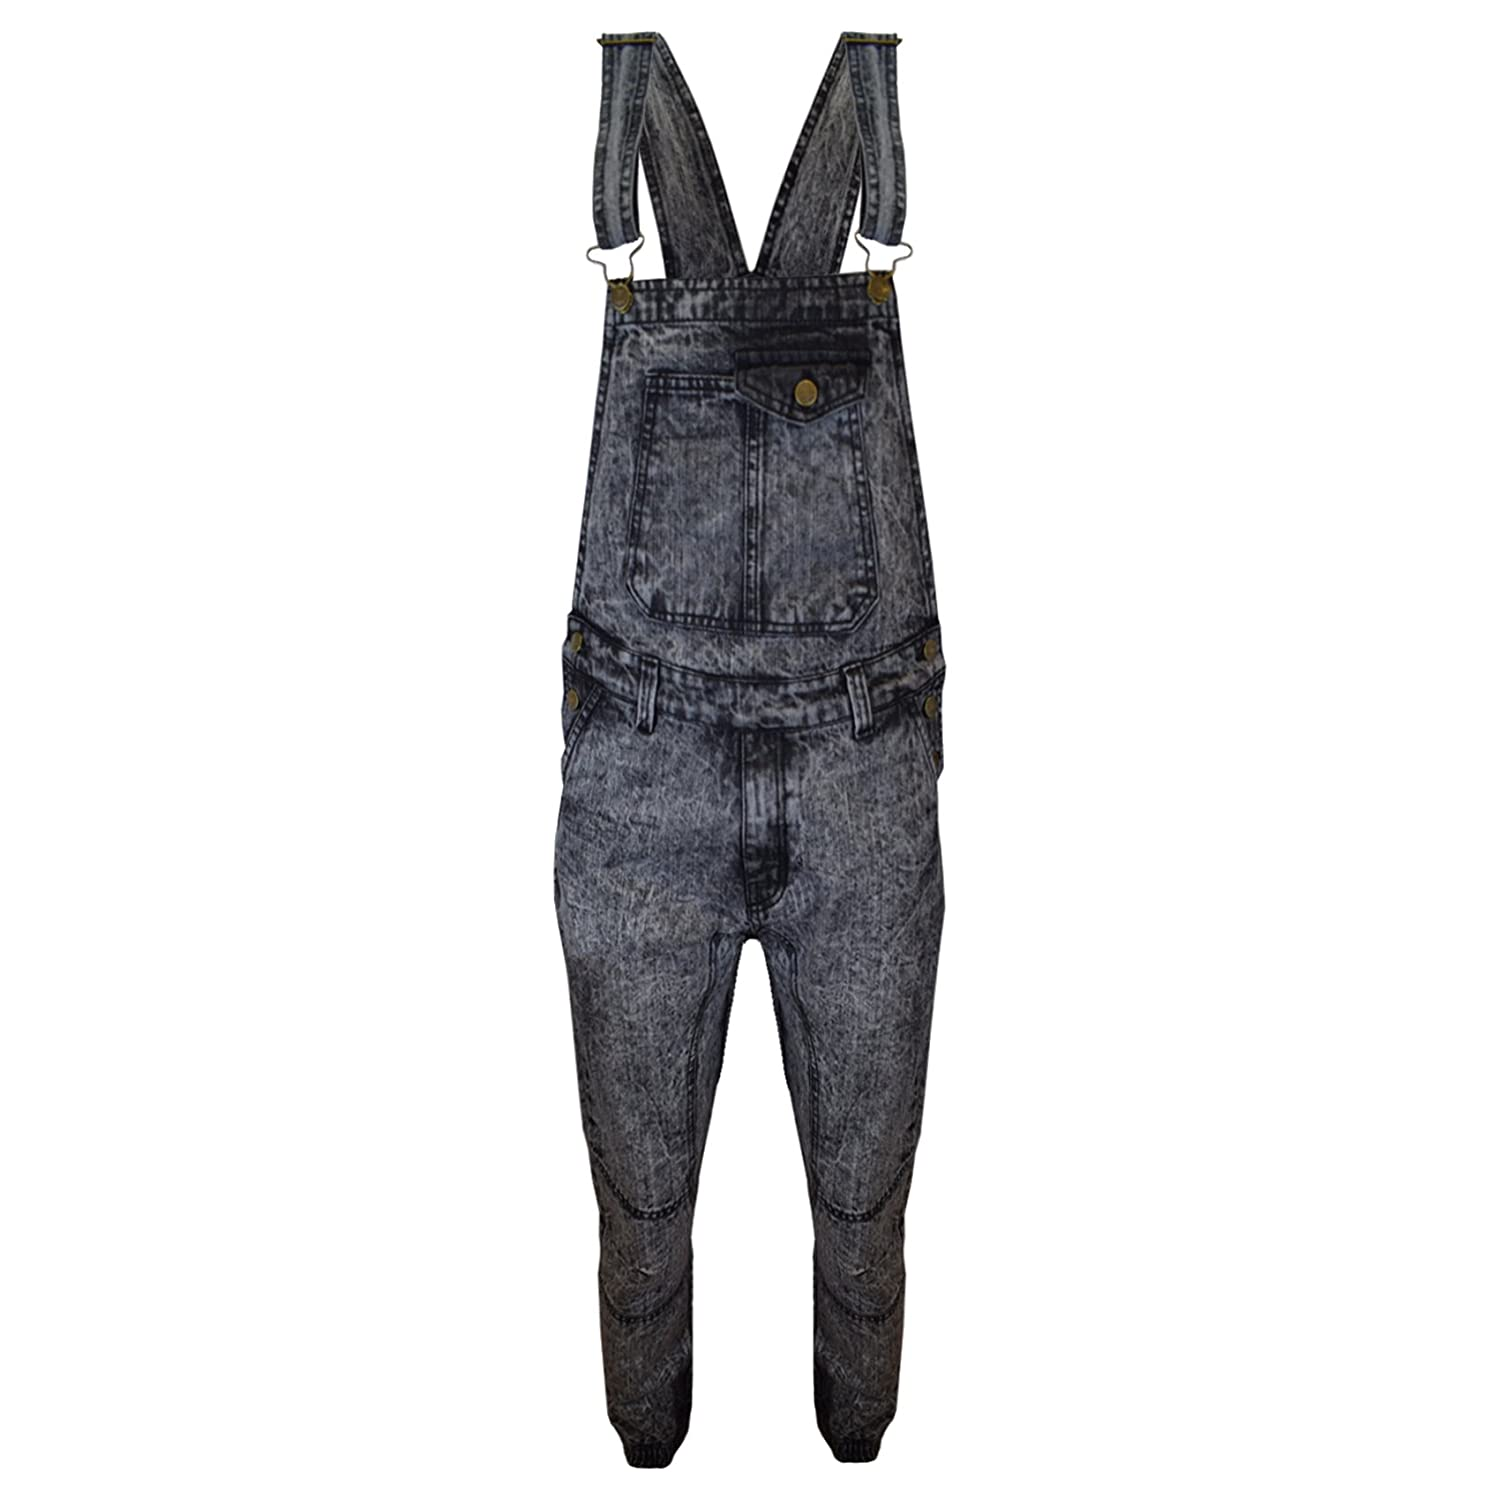 7ba82e75474d SA Fashions Mens New Blue Acid Wash Designer Dungaree Overalls Mid Bib  Dungarees Denim Jeans Classic Button Pockets UK Sizes XS-XXL  Amazon.co.uk   Clothing